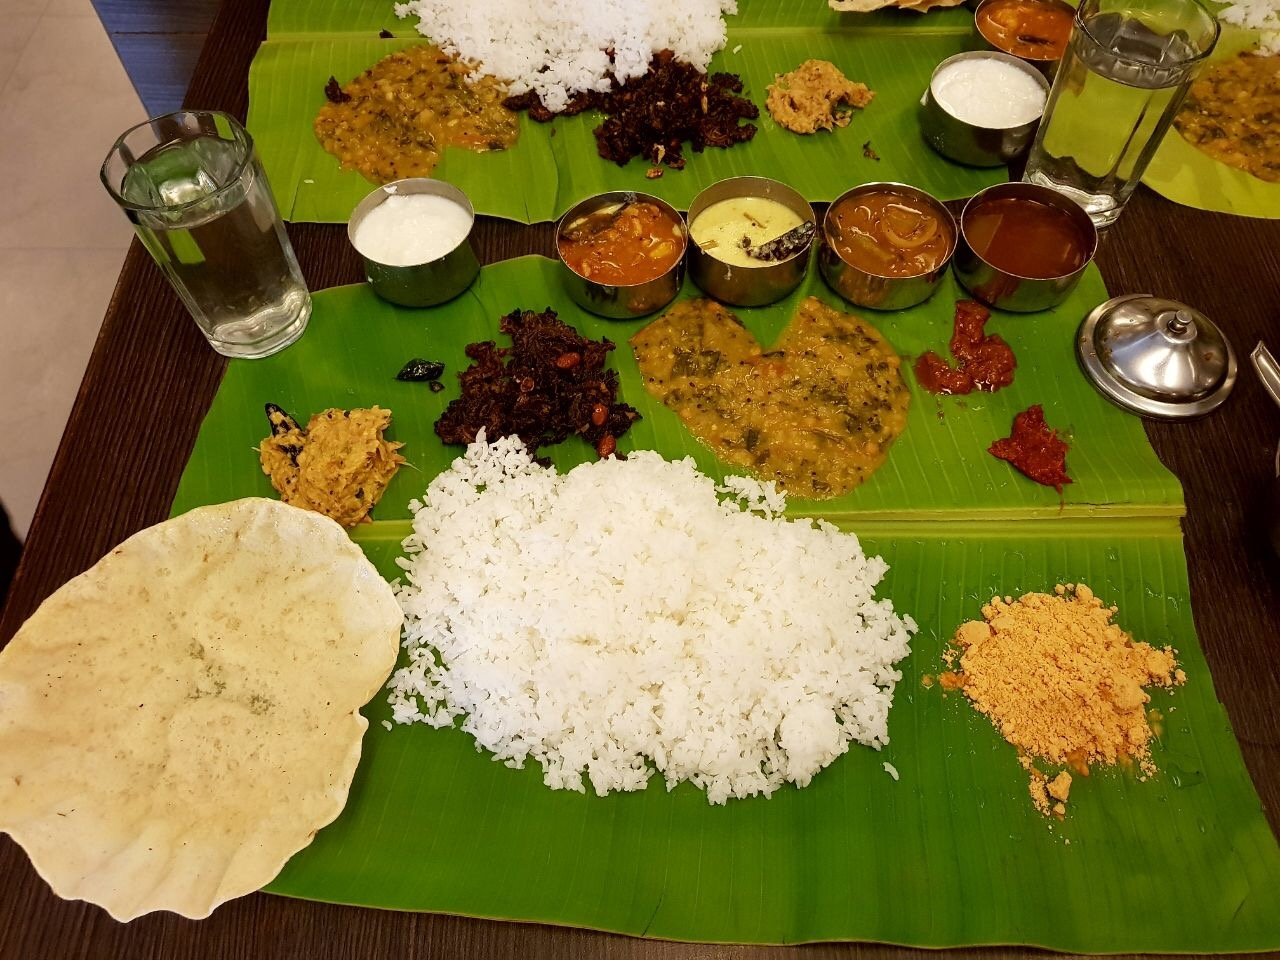 thali food in india leaf meal